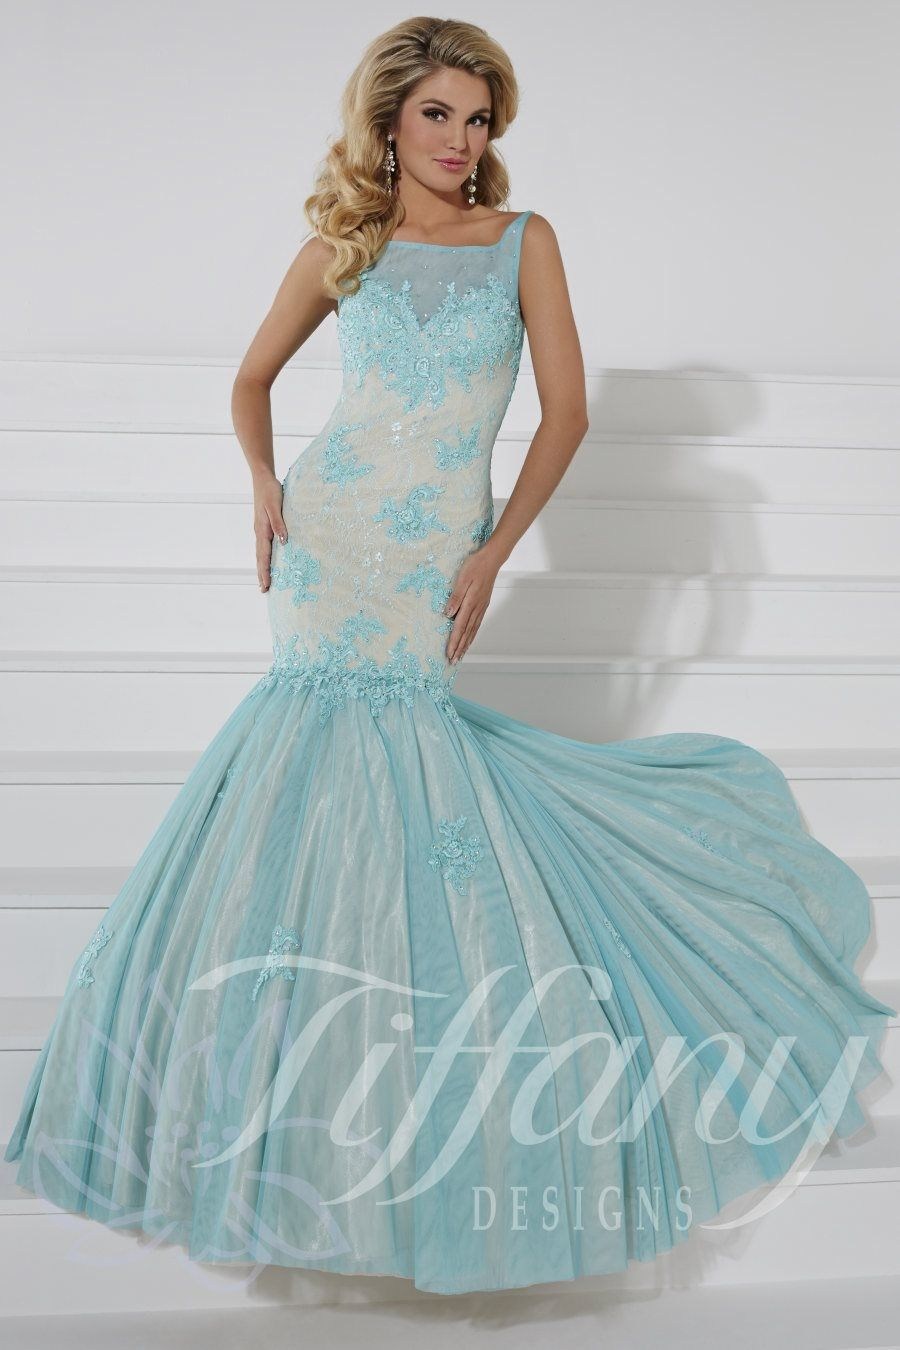 Perfect Prom Dresses Fort Worth Texas Illustration - All Wedding ...